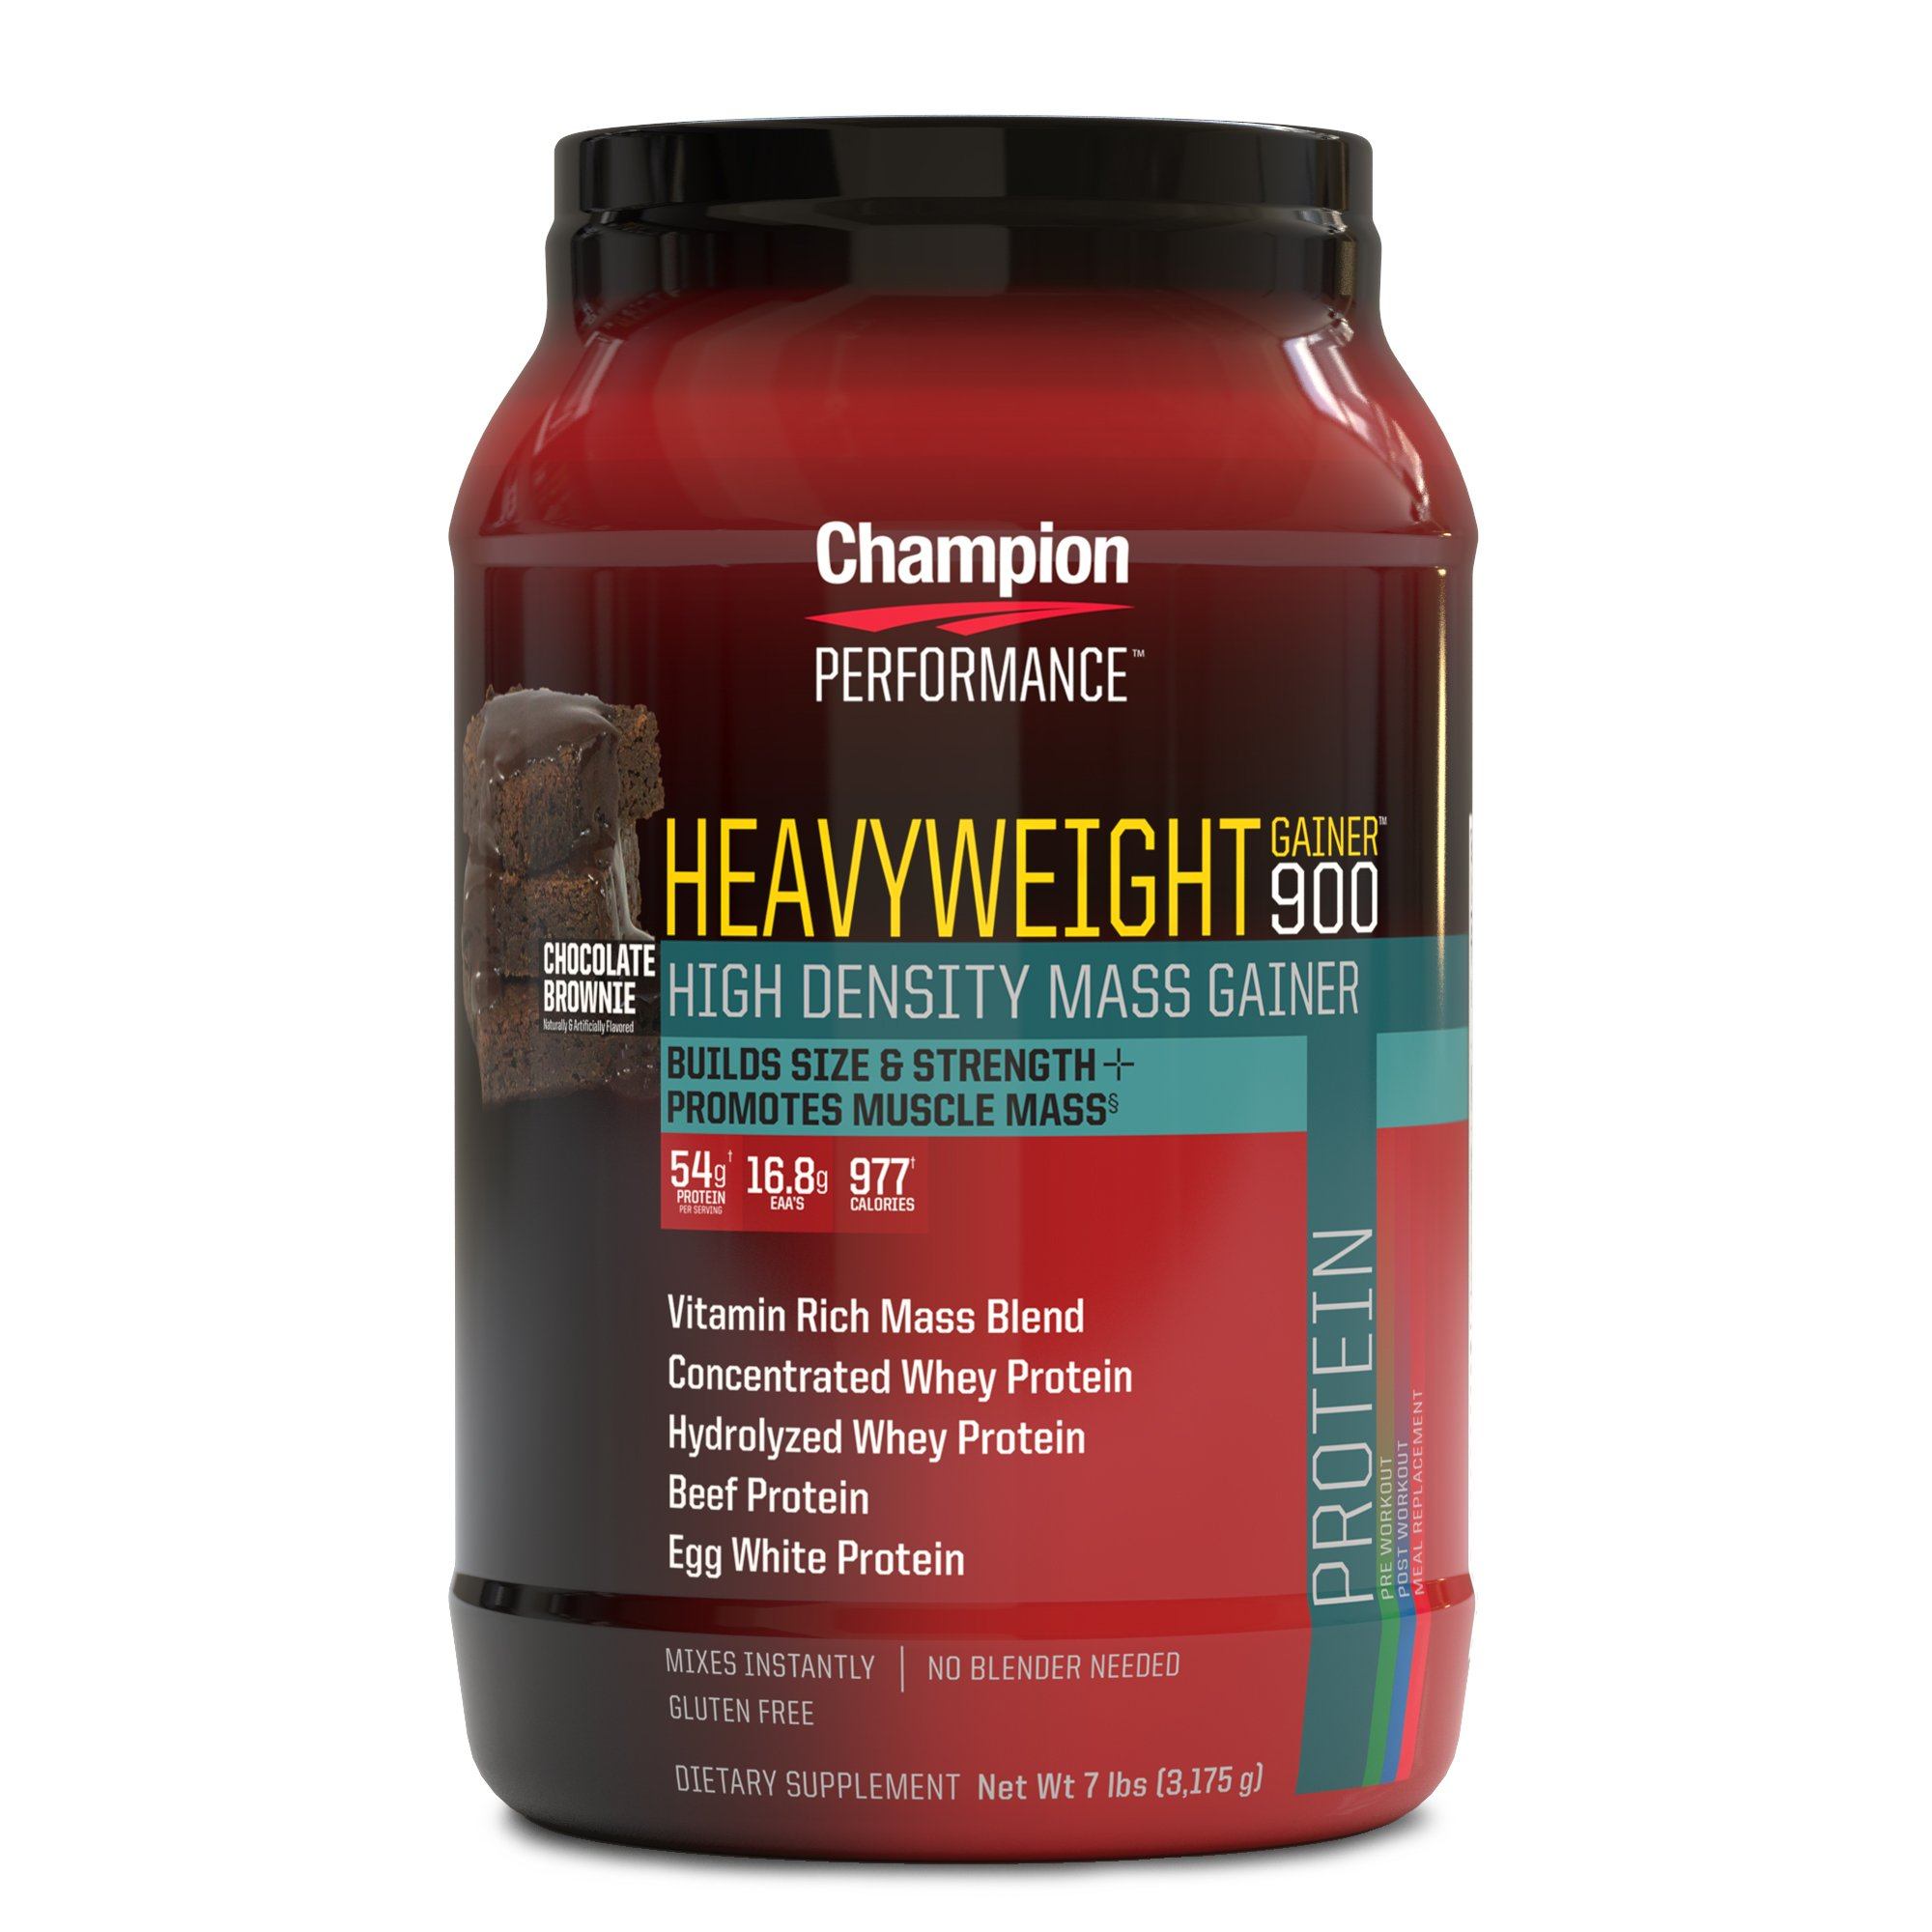 Champion Performance - Heavyweight Gainer 900 Protein Powder - Chocolate Brownie - High Density Mass Gainer Sports Supplement, Builds Muscle Mass, Size, and Strength - 7 lbs